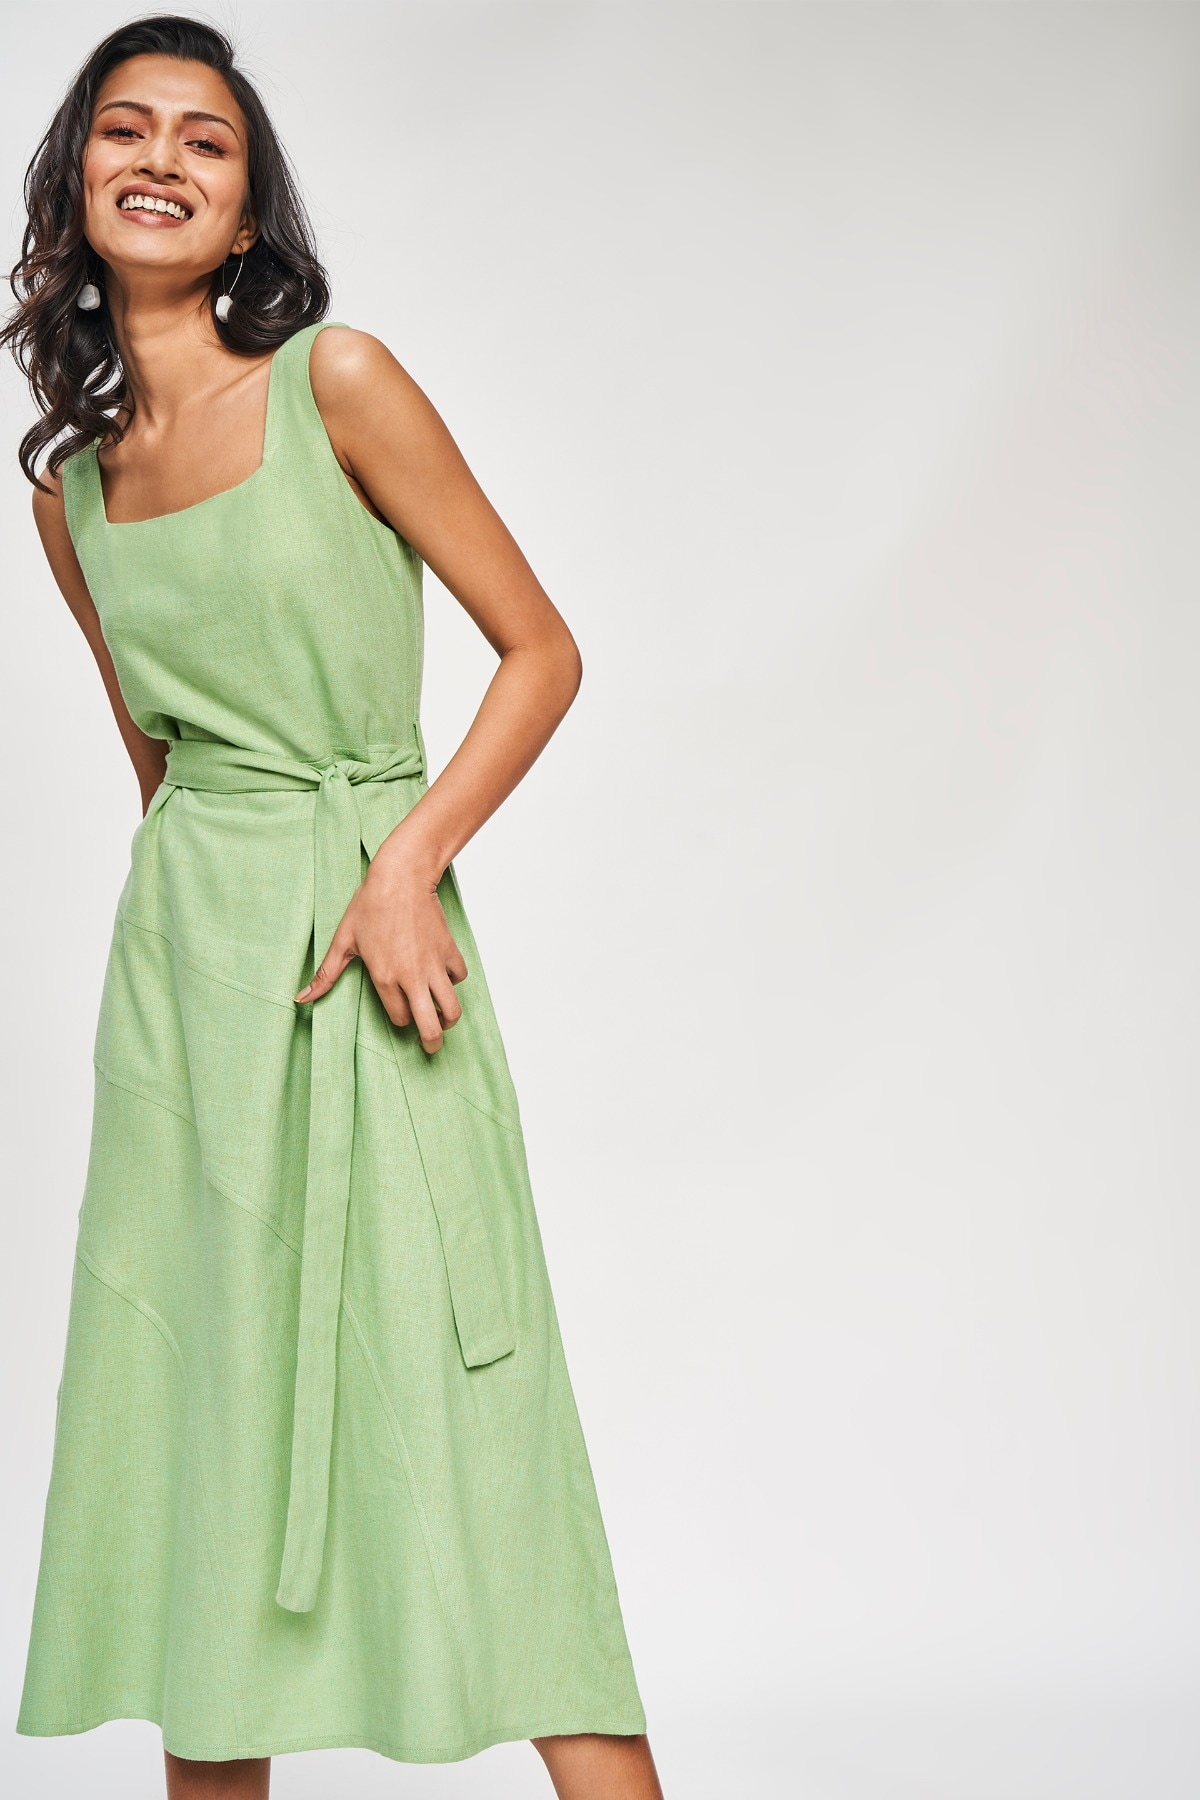 AND | Sage Green Solid A-Line Dress